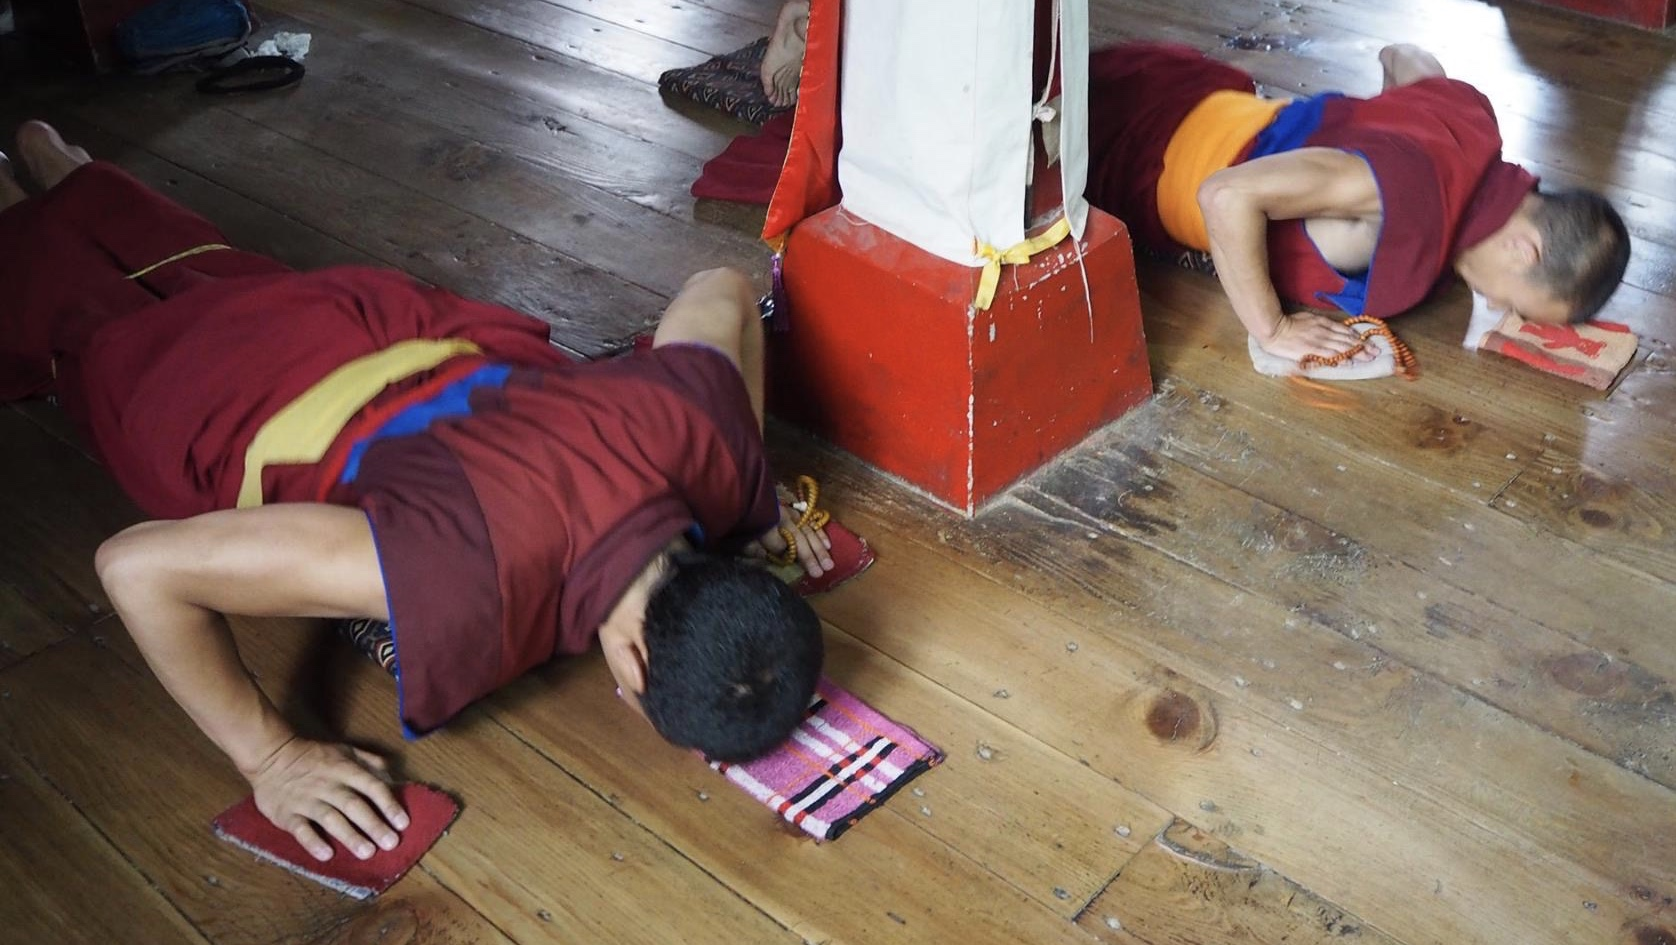 Here and chapter title above: Monksprostrating at Olka Cholung Monastery, Tibet, where Lama Tsongkhapa completedmillions of prostrations. (Photos Ven Tenzin Tsultrim)